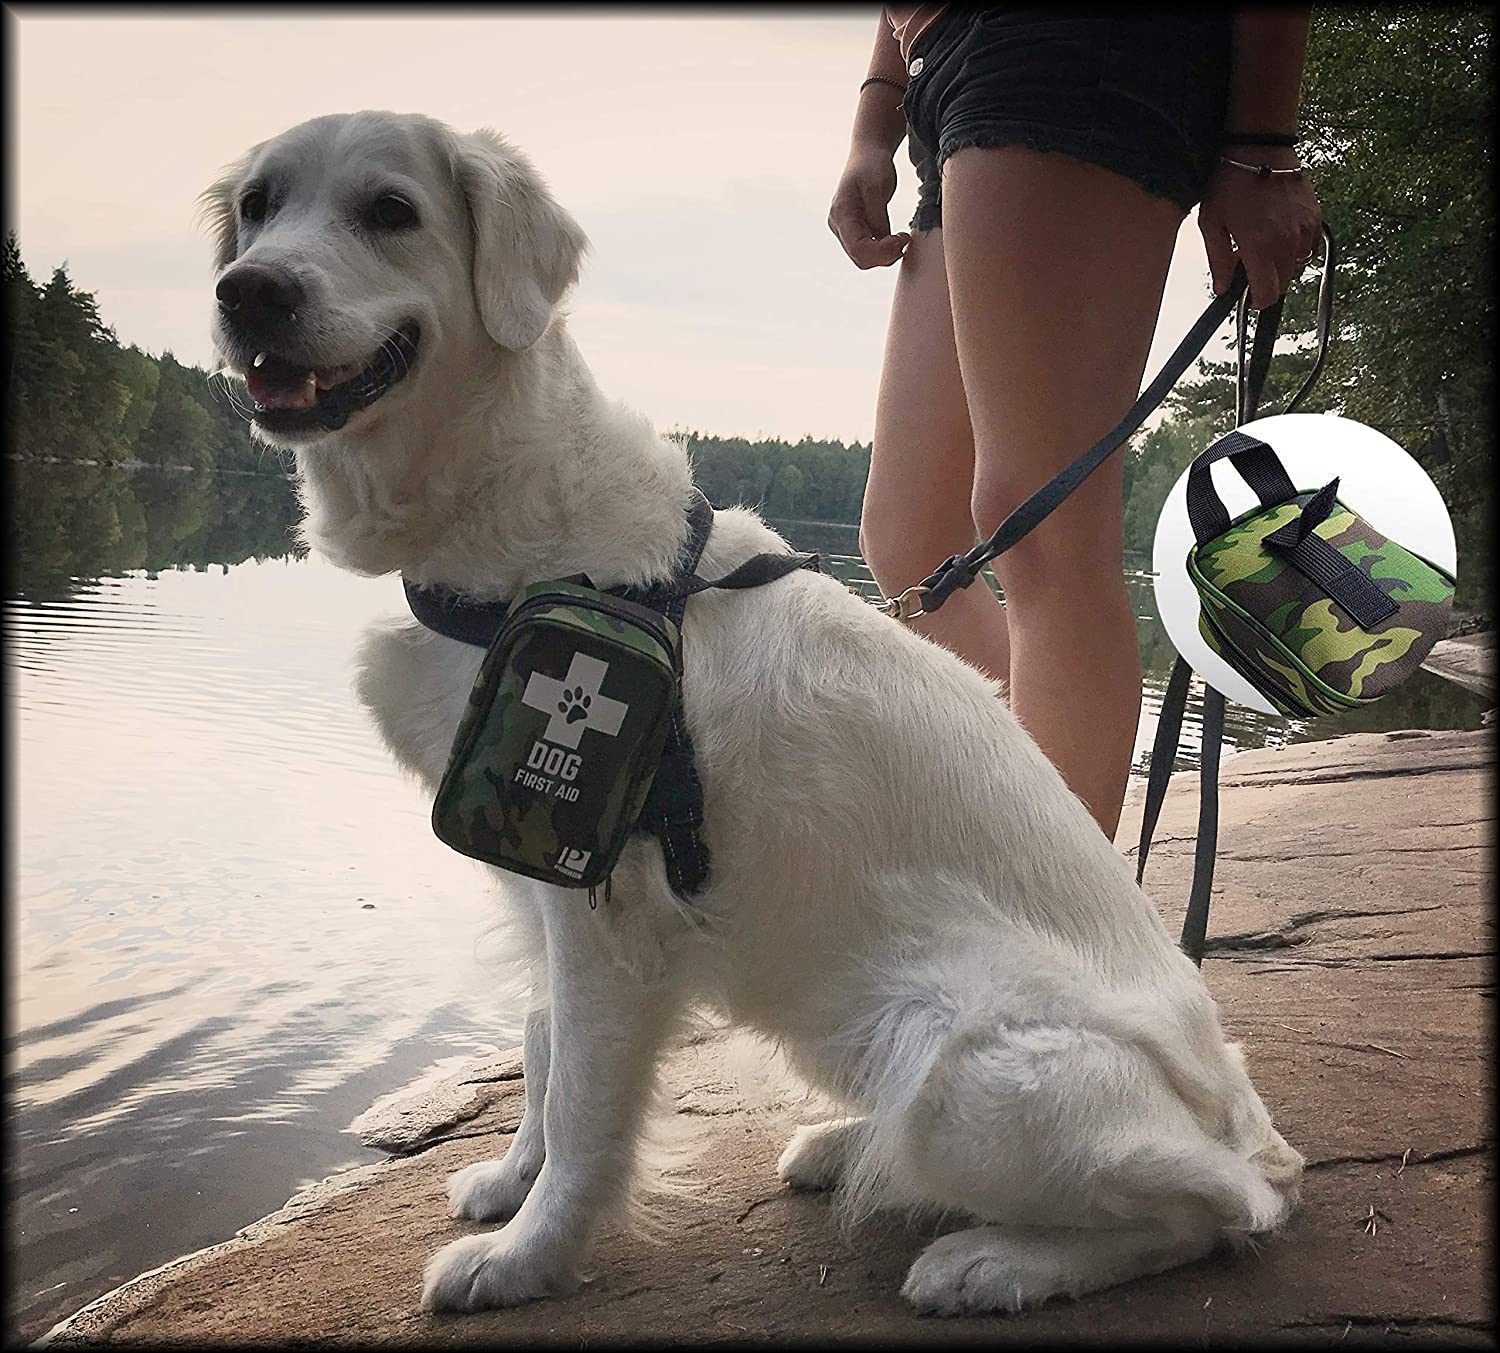 Smiling dog at a lake wearing a camouflage dog first aid kit